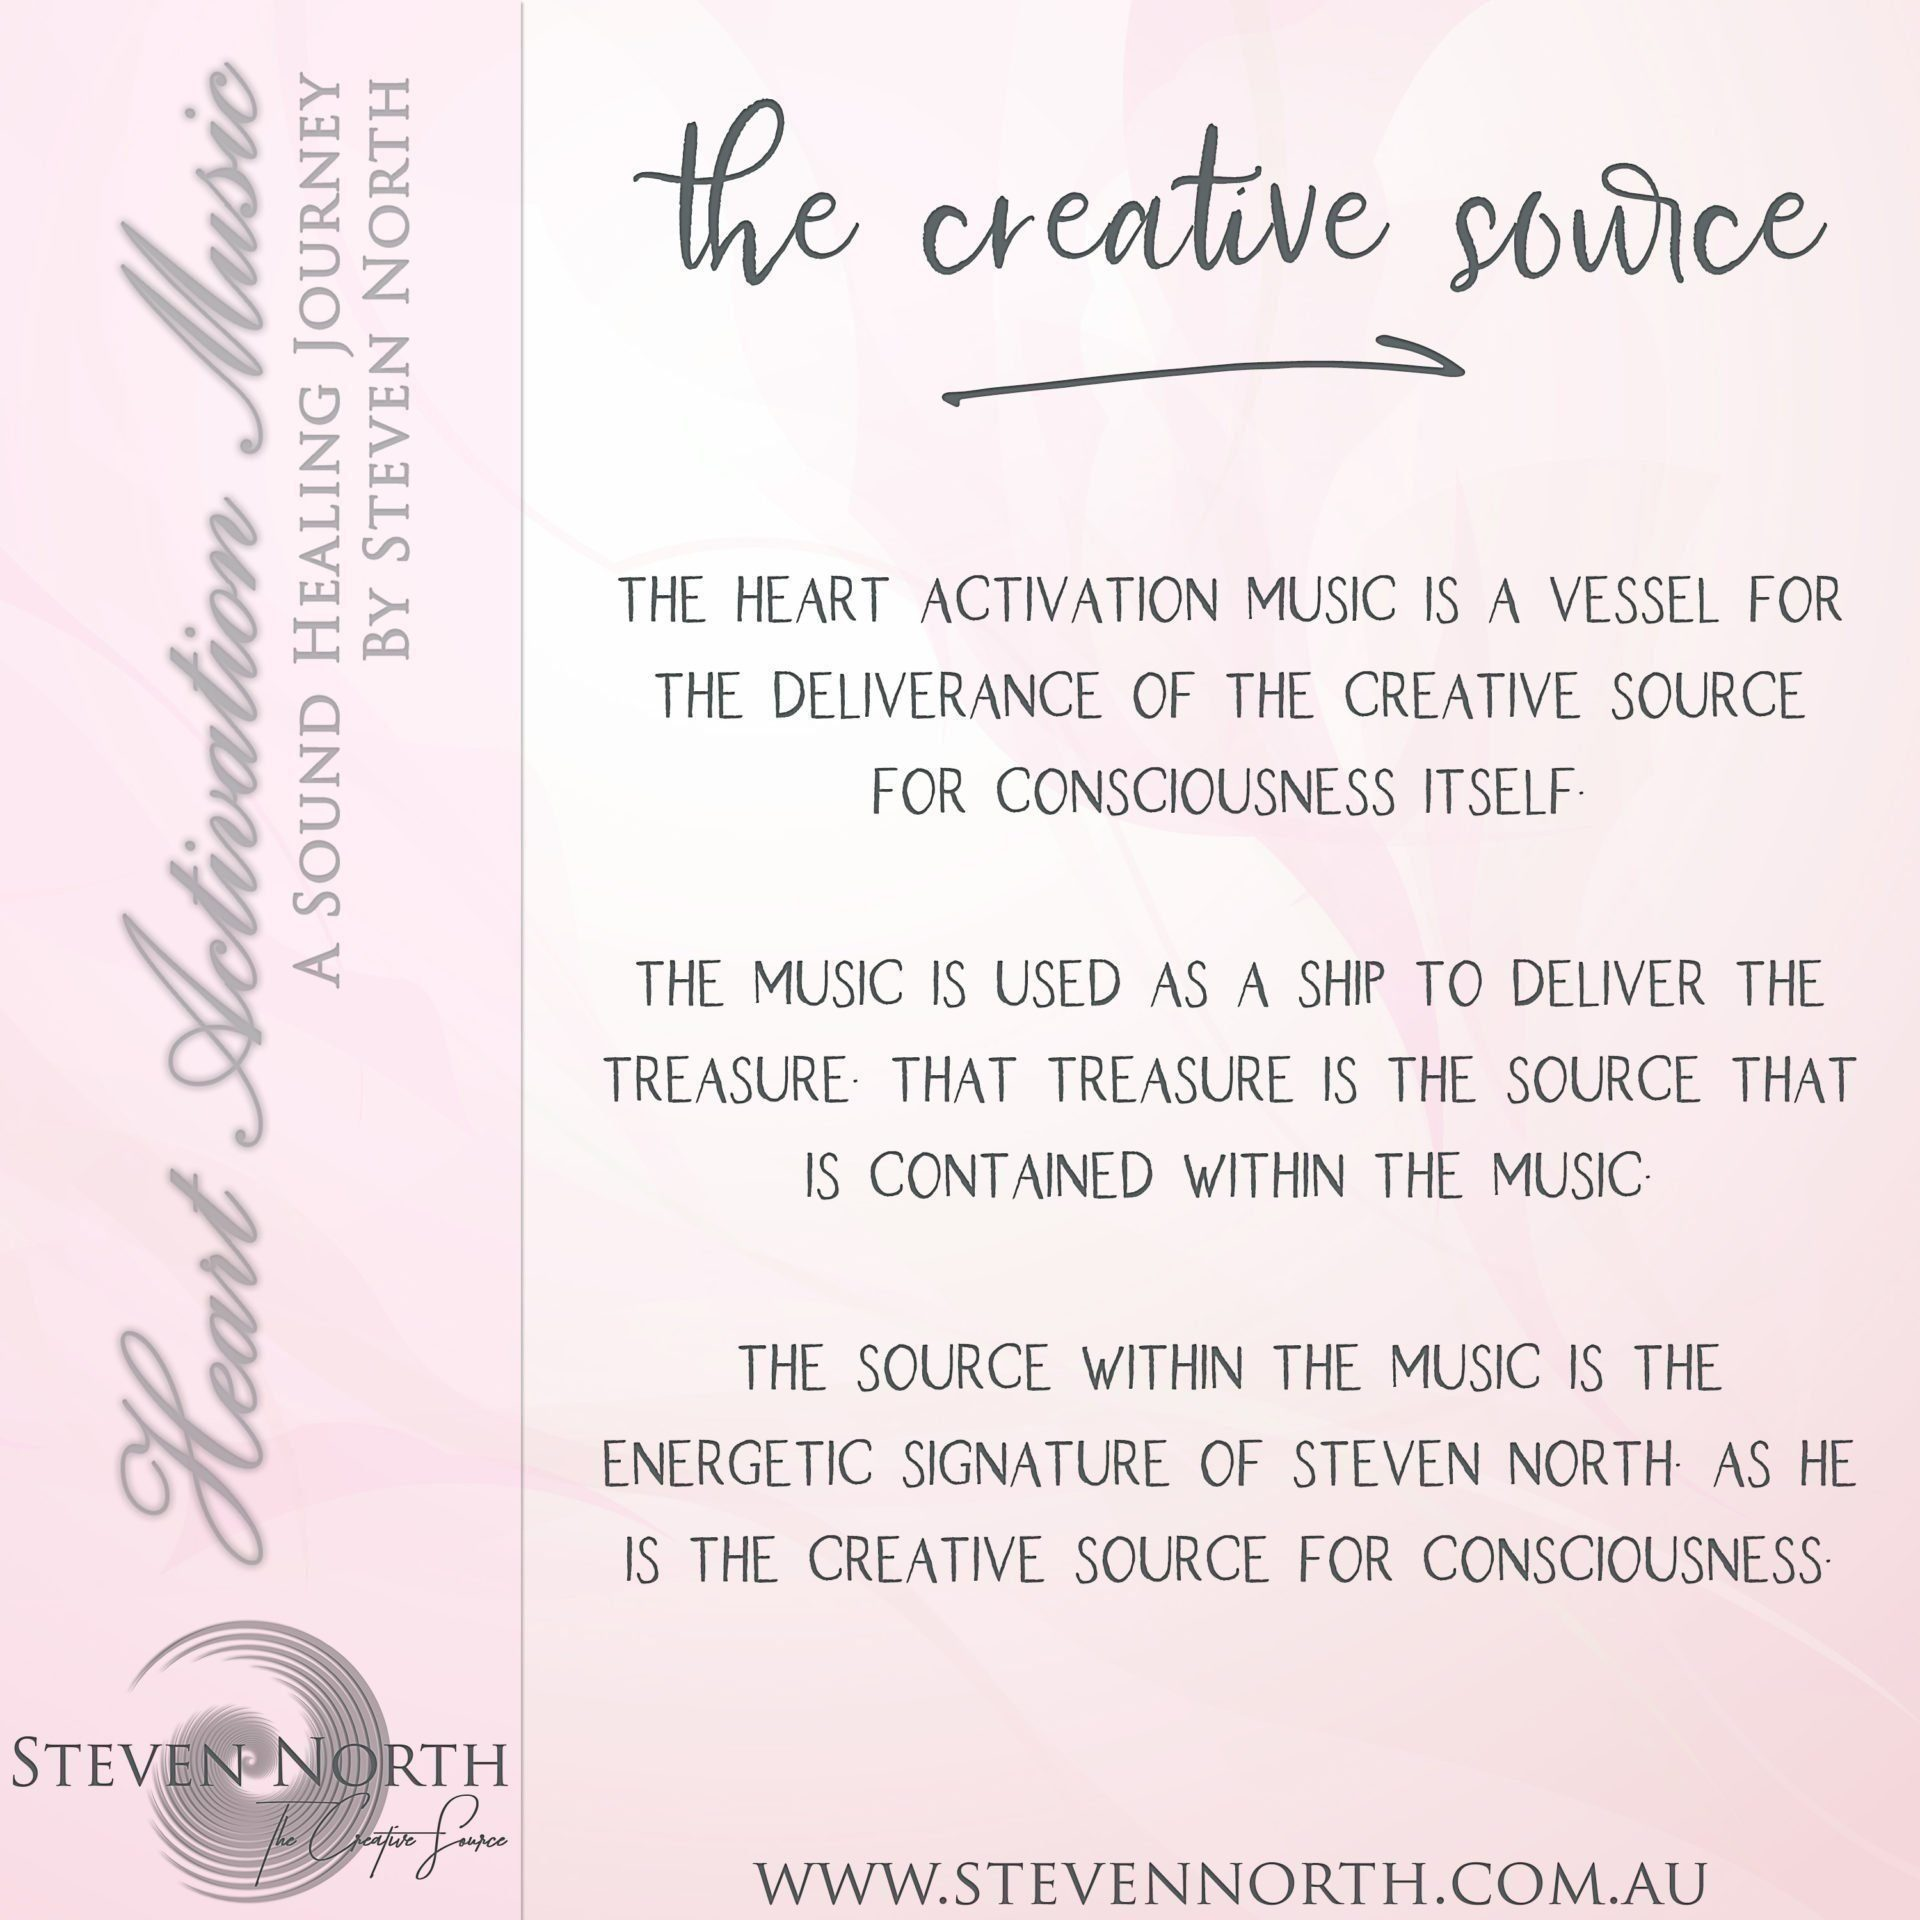 The Creative Source for Consciousness